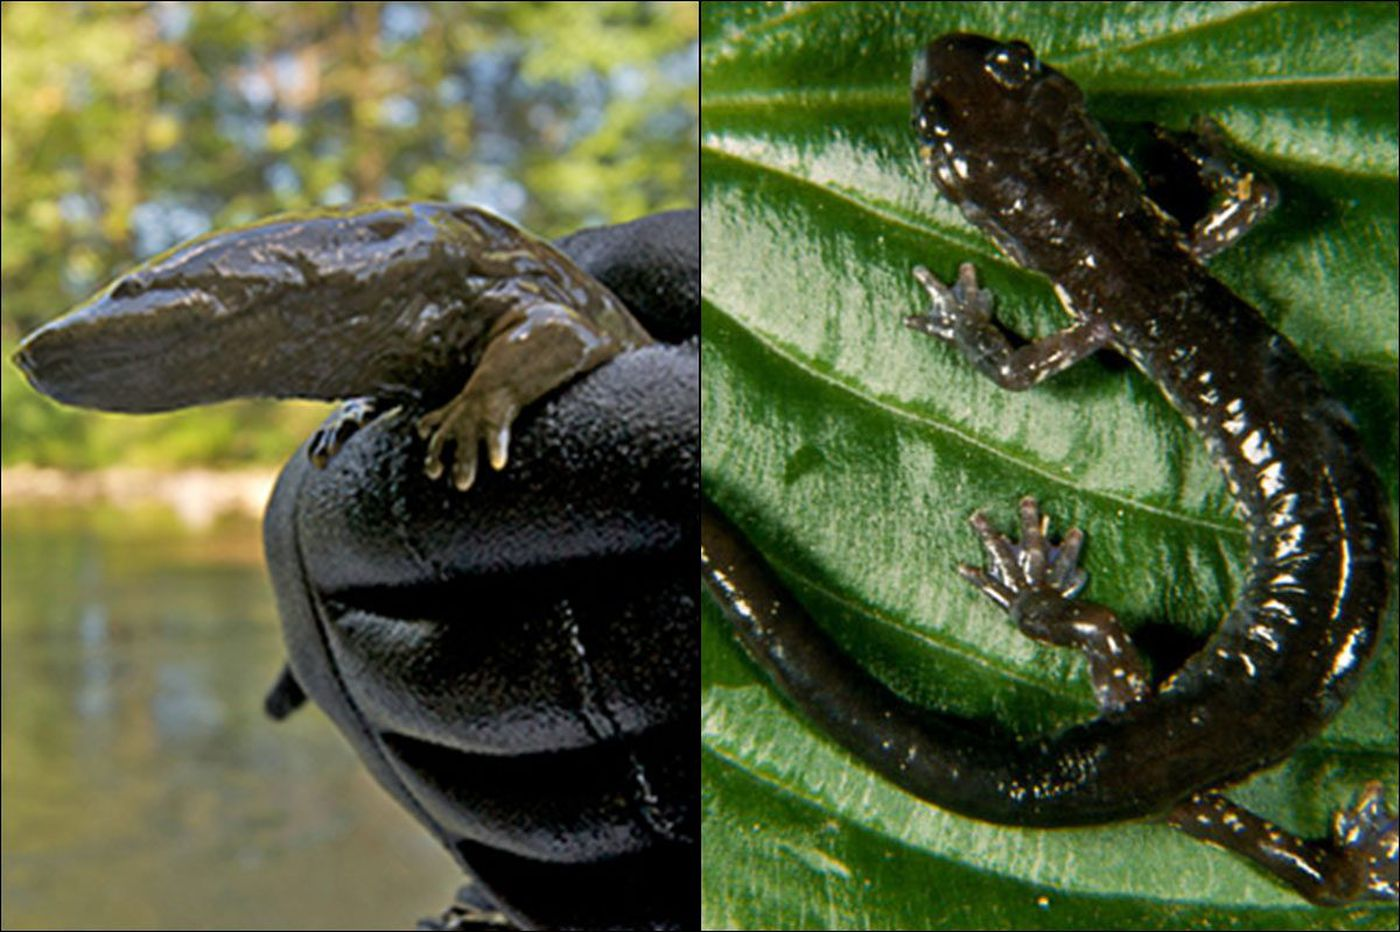 Seriously? Battle looms over Pa. state amphibian: Hellbender vs. Wehrle's